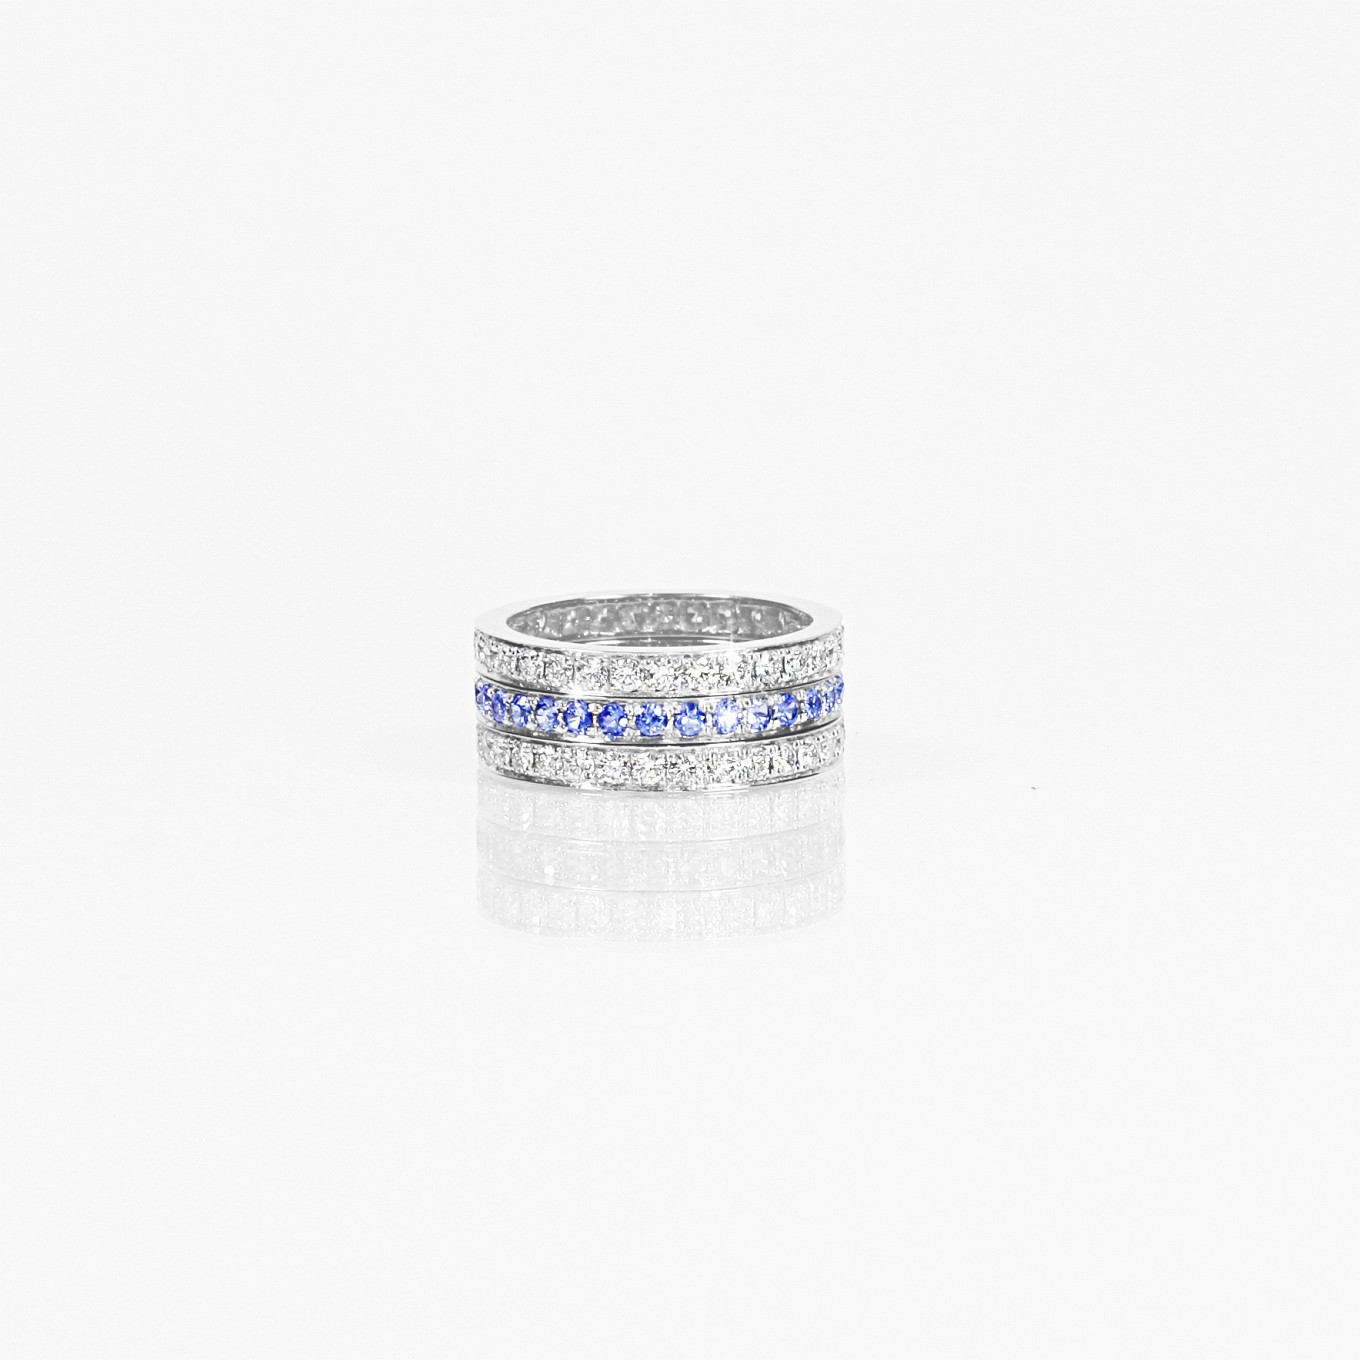 LARGE DIAMOND & BLUE SAPPHIRE STACKING RINGS IN 18K WHITE GOLD